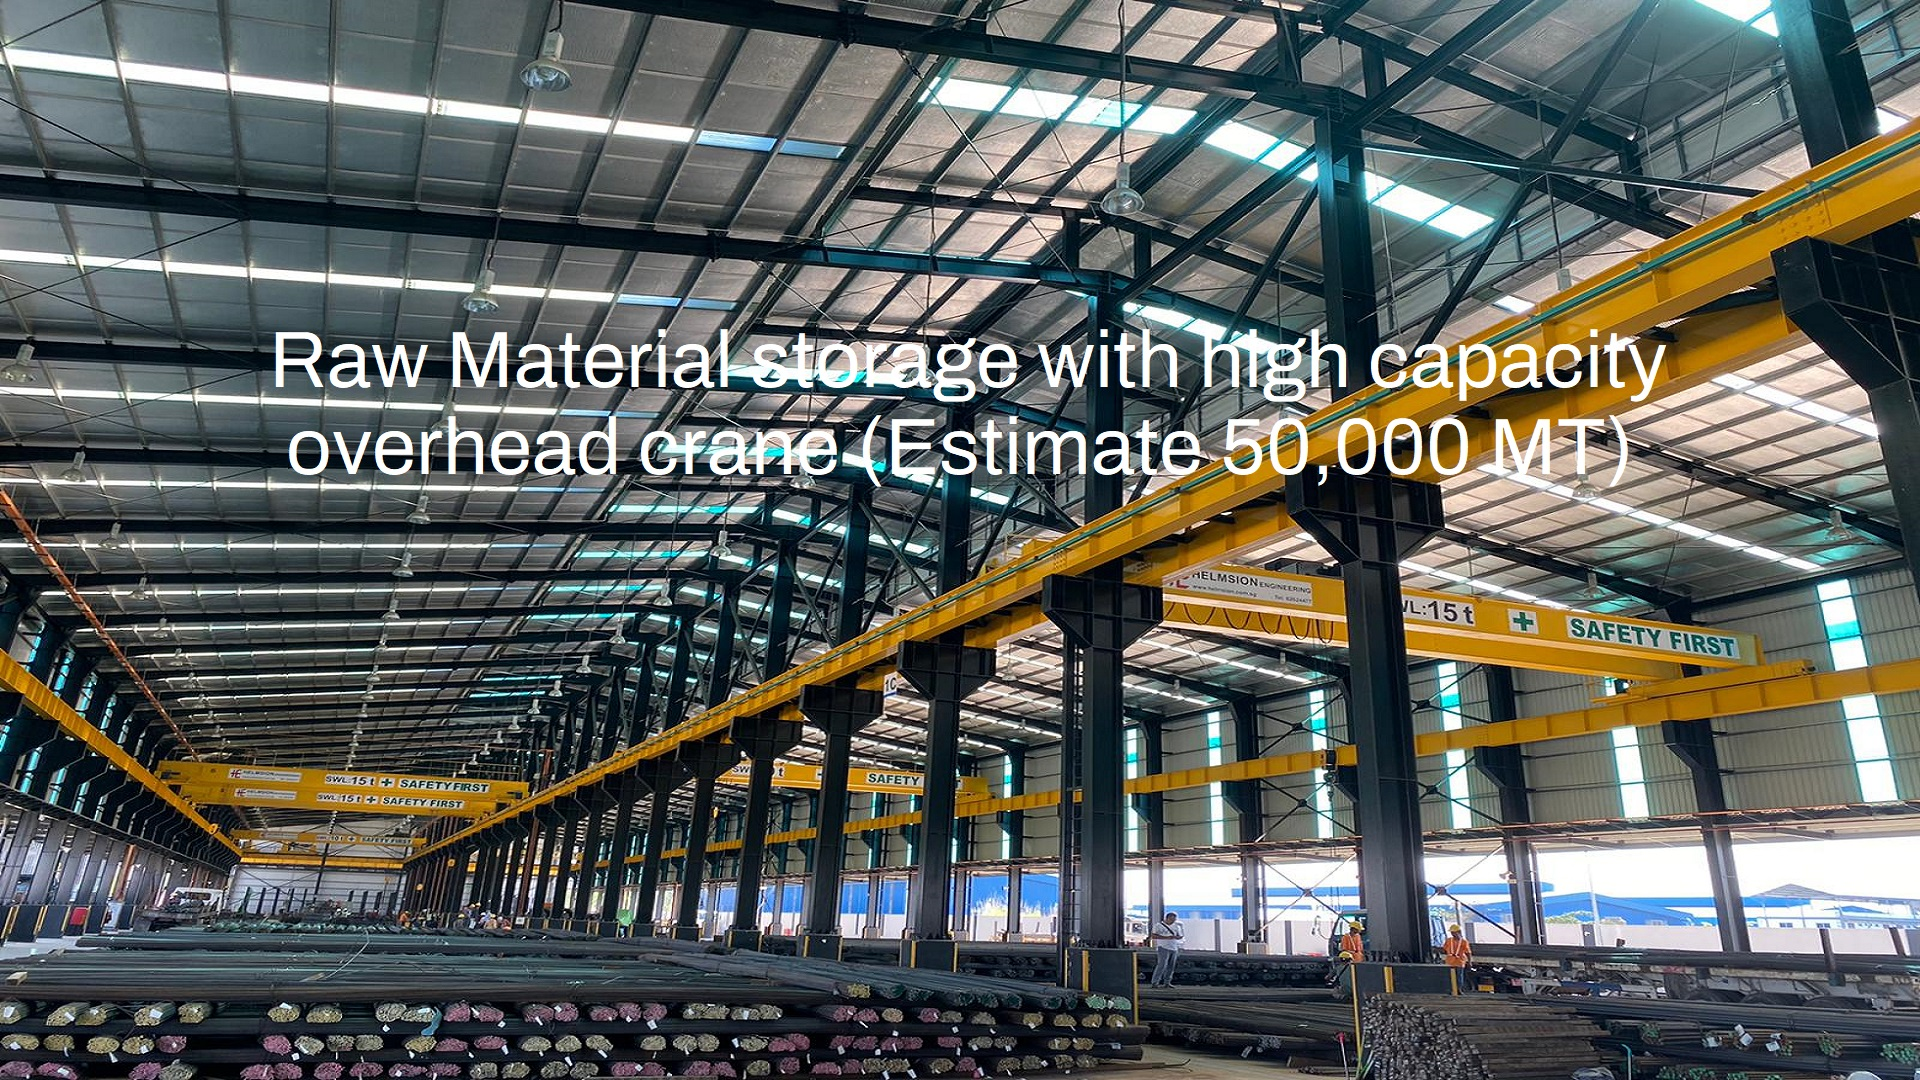 Raw Material storage with high capacity overhead crane (Estimate 50,000 MT)